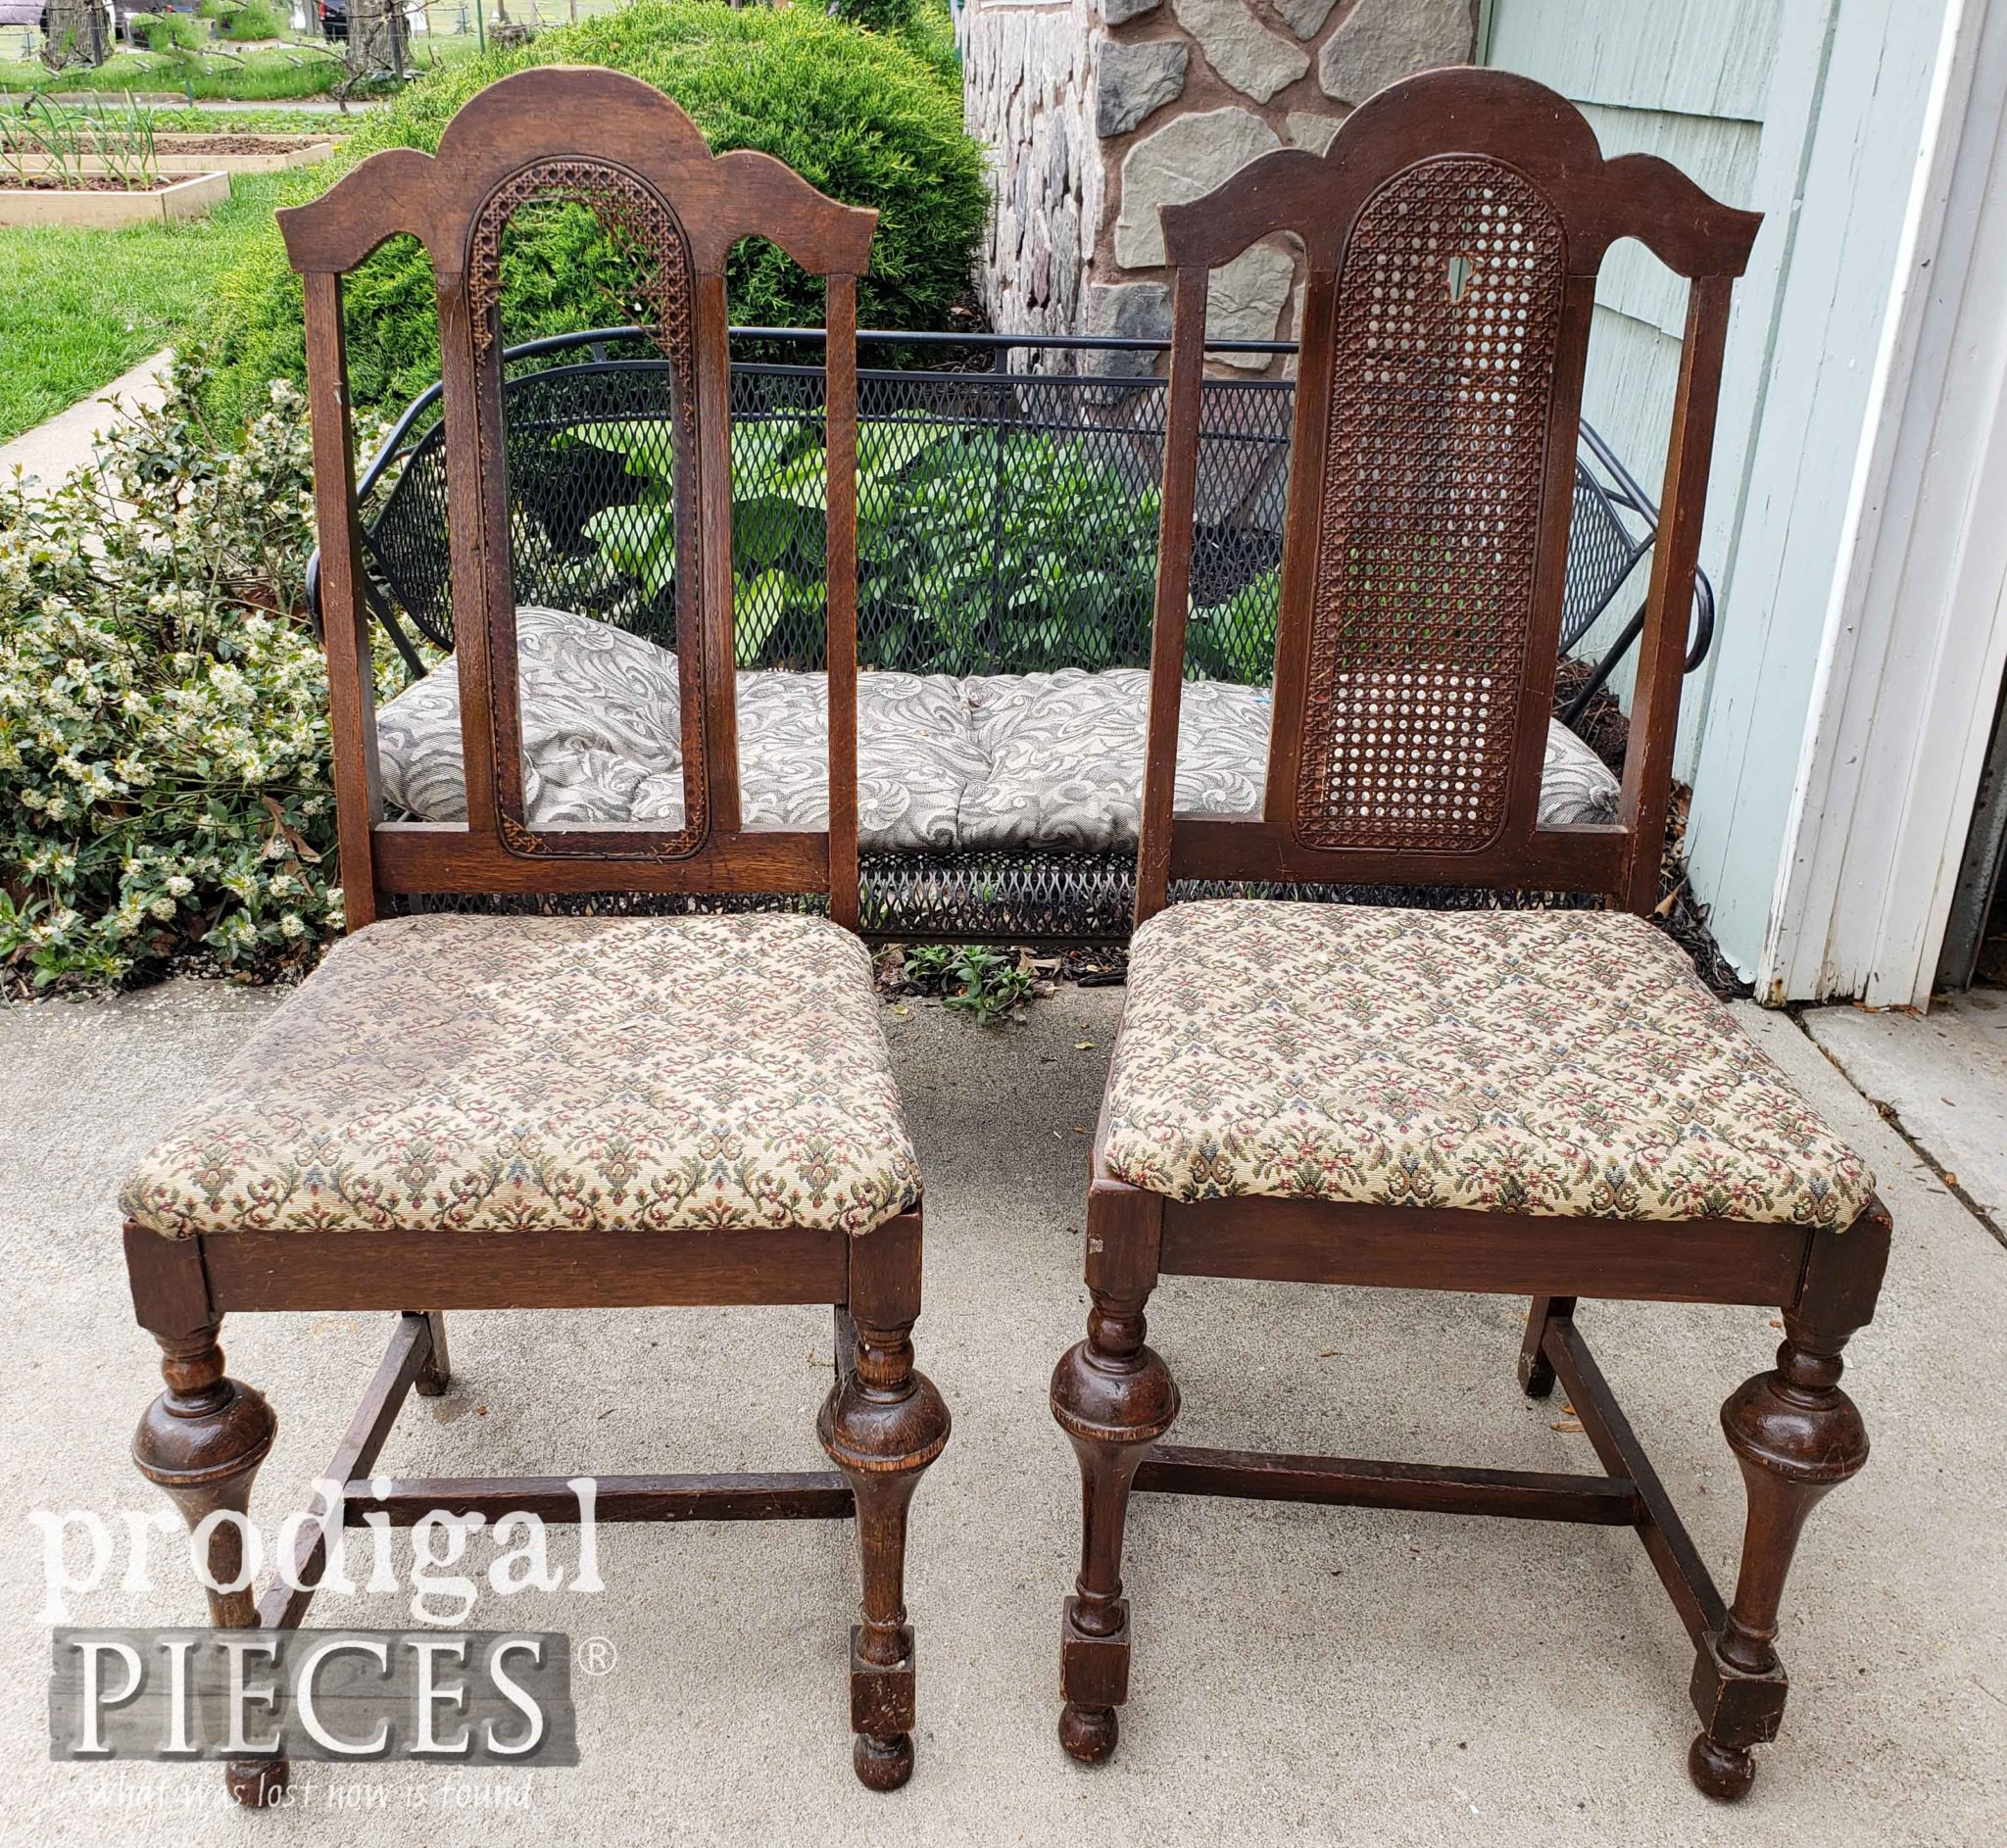 Pair of Antique Chairs Found on the Curb by Larissa of Prodigal Pieces | prodigalpieces.com